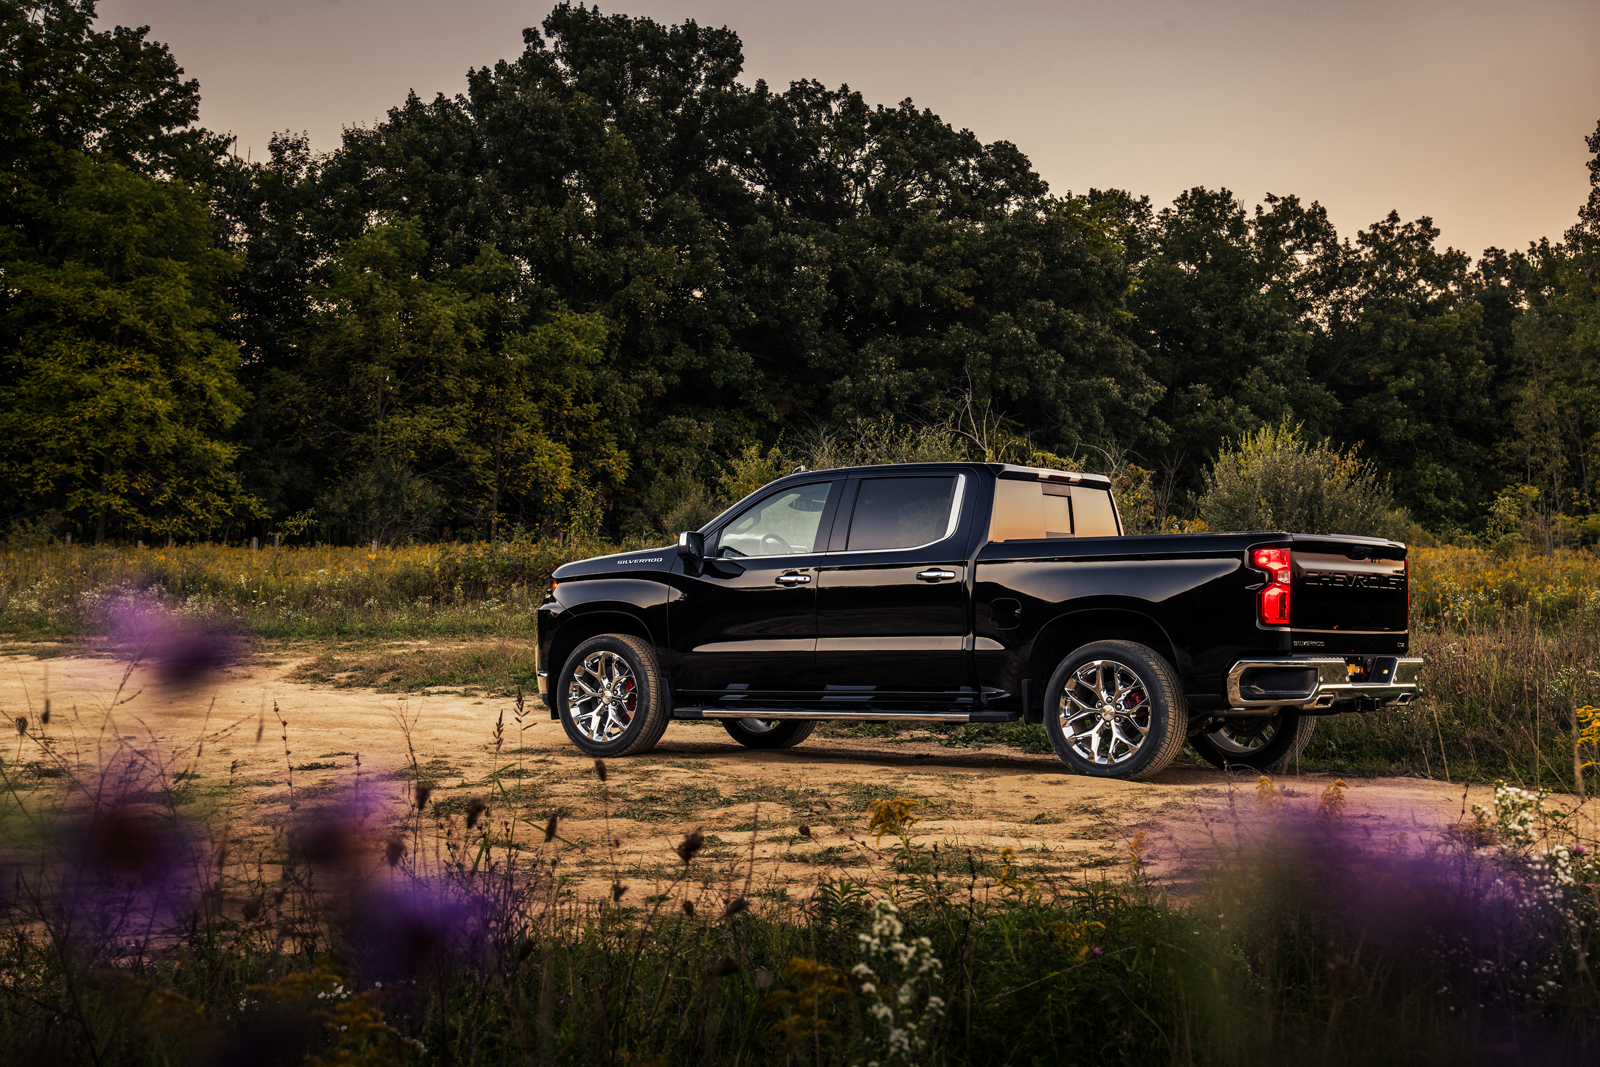 Chevrolet Silverado RST Off-Road and RST Sport Concepts Debut